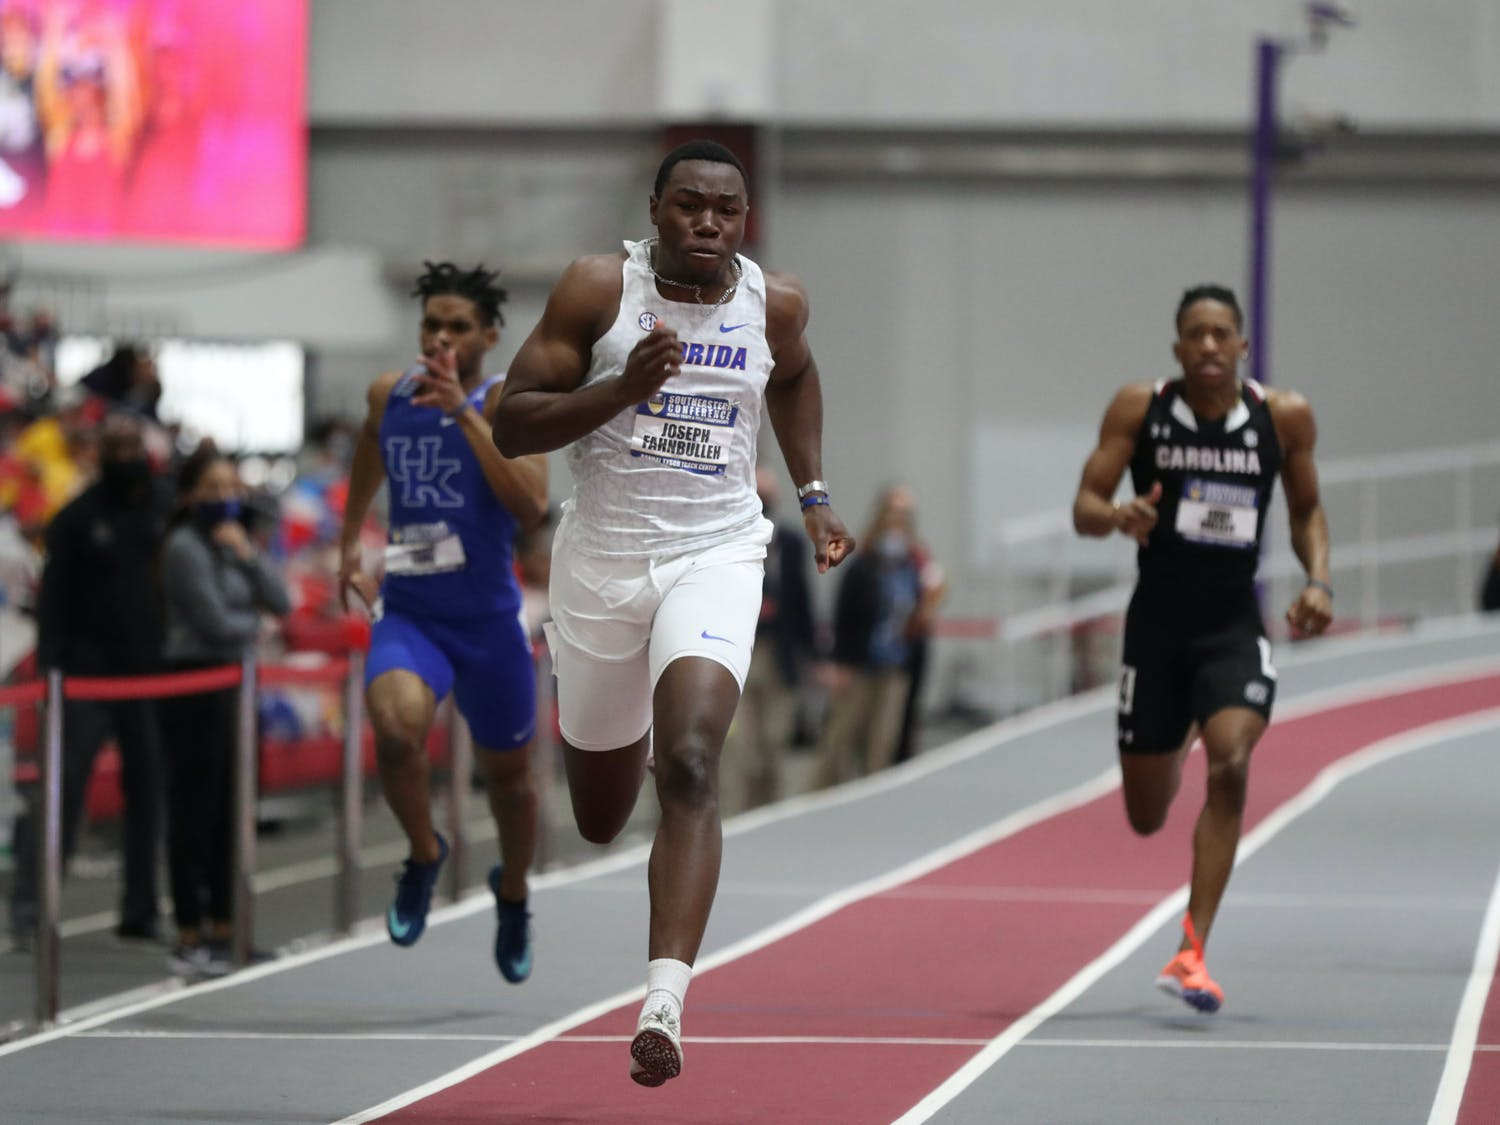 Florida's Joseph Fahnbulleh competes during the SEC Indoor Track and Field Championships on Saturday, February 27, 2021 at Randal Tyson Track Center in Fayetteville, Ark. / UAA Communications photo by Alex de la Osa